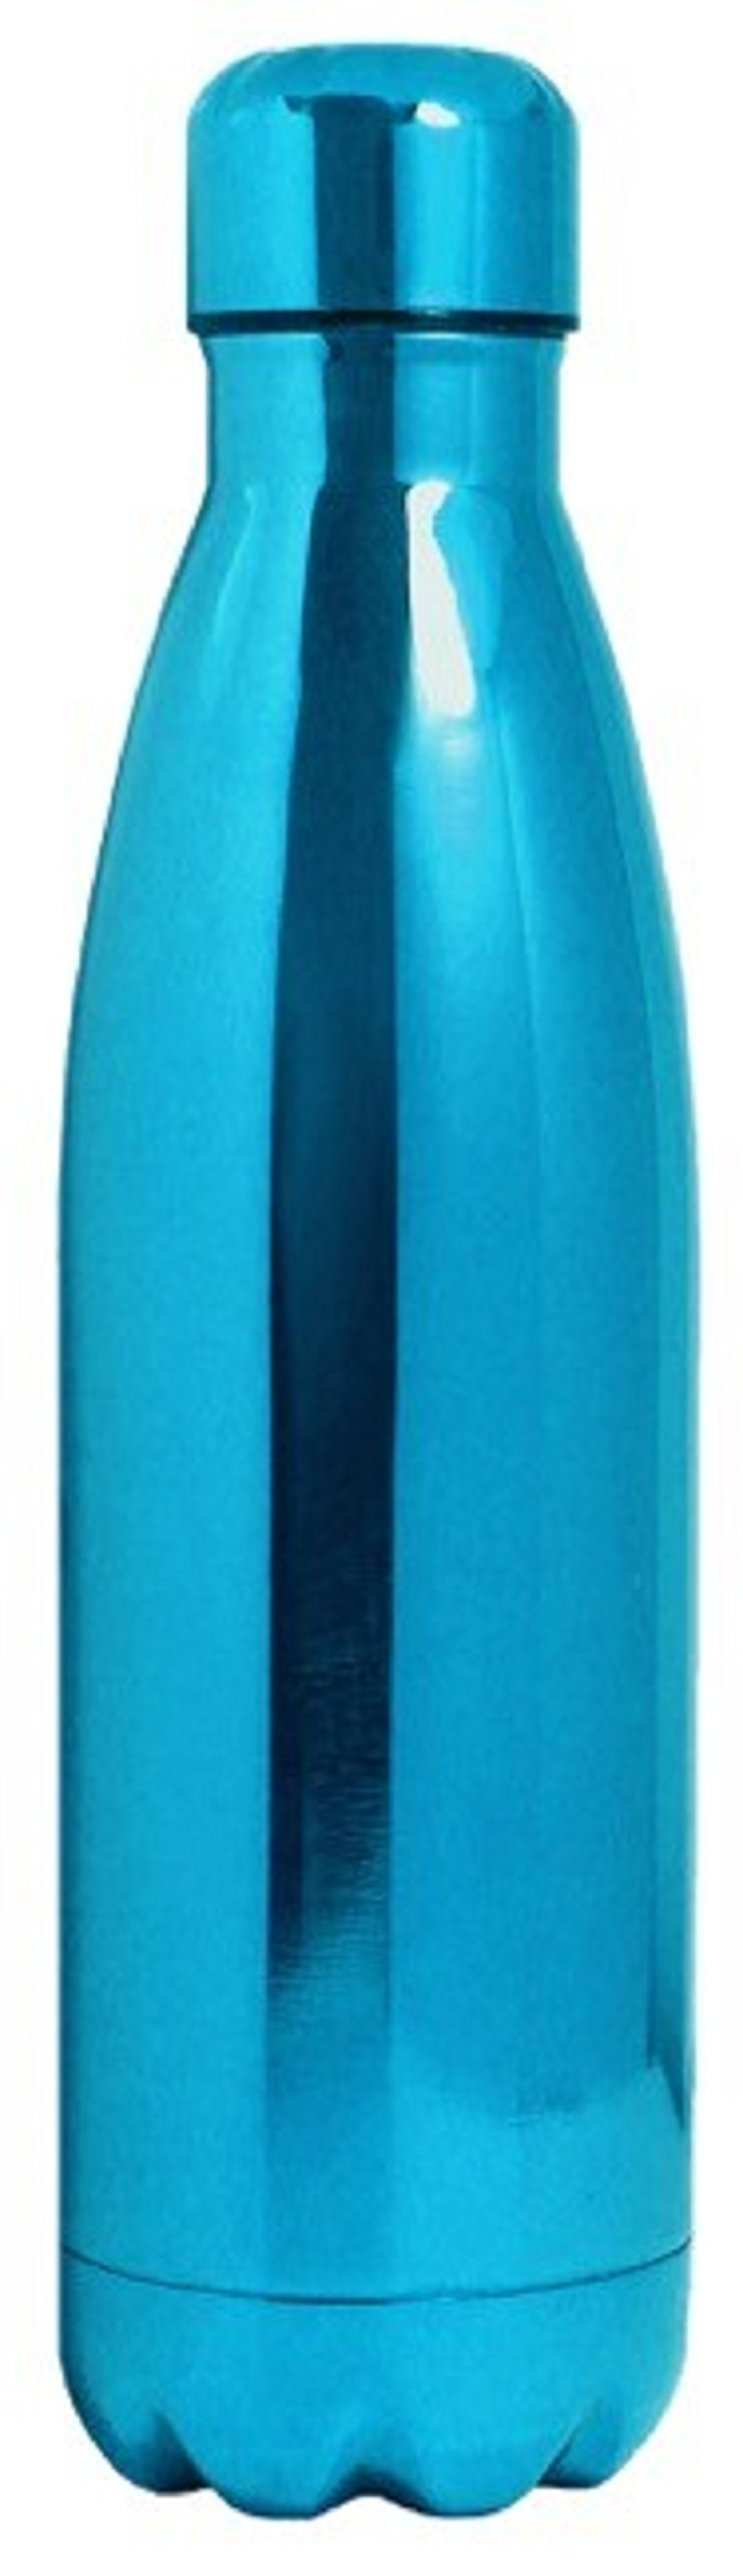 Wellness Insulated Electroplated Finish Double Wall Vacuum Sealed Stainless Steel Water Bottle, 25 oz, Emerald